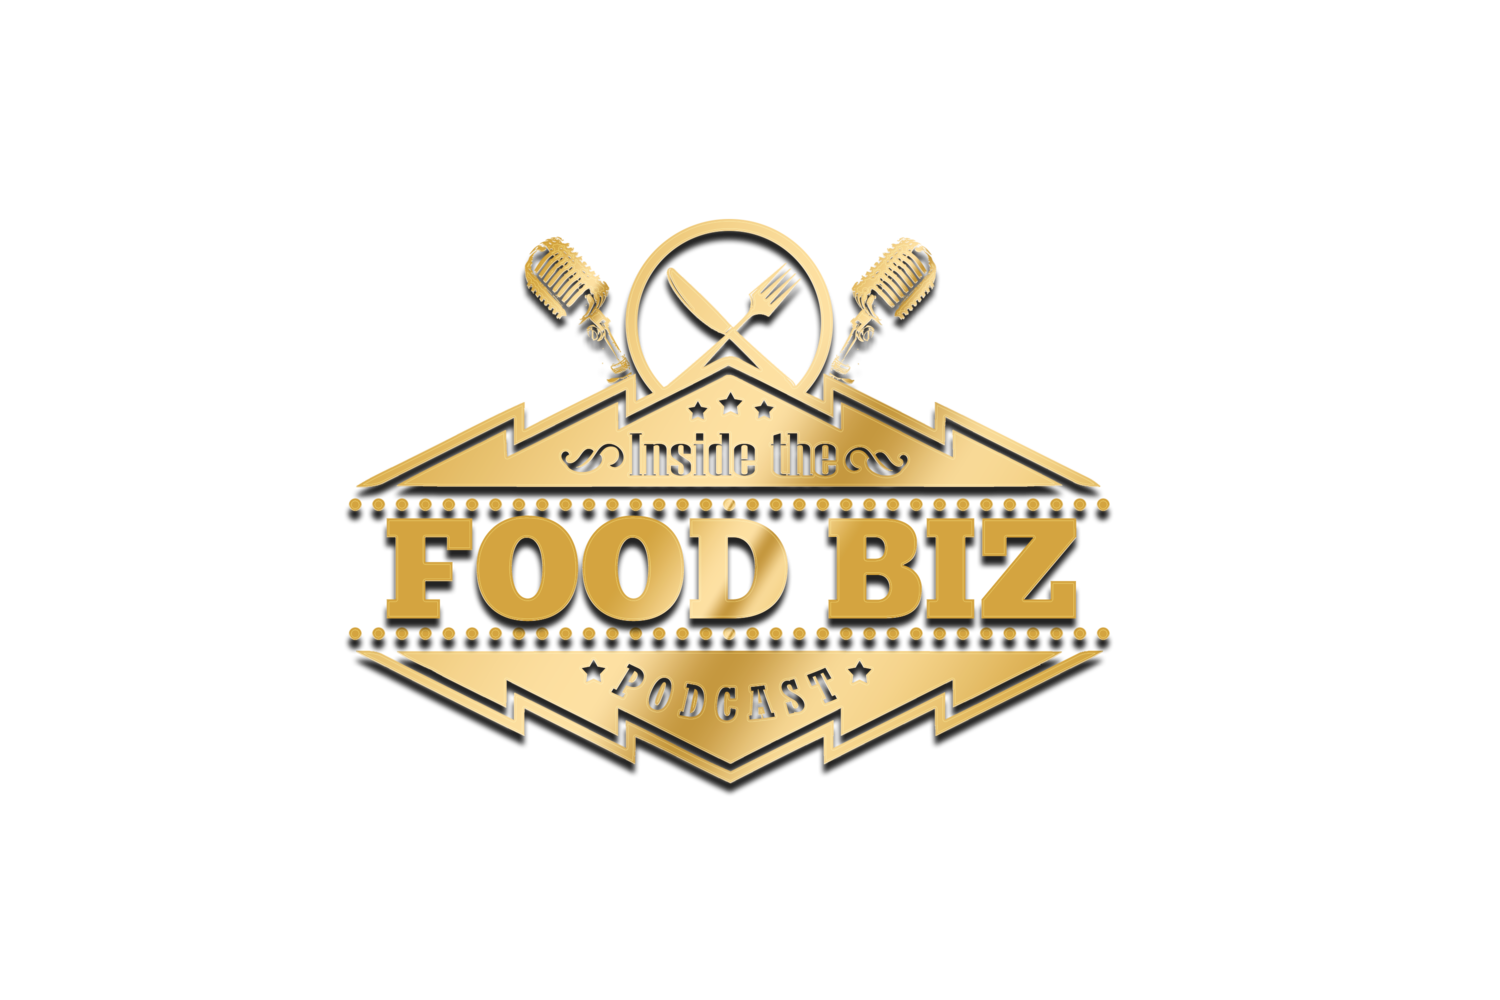 Inside the Food Biz Podcast